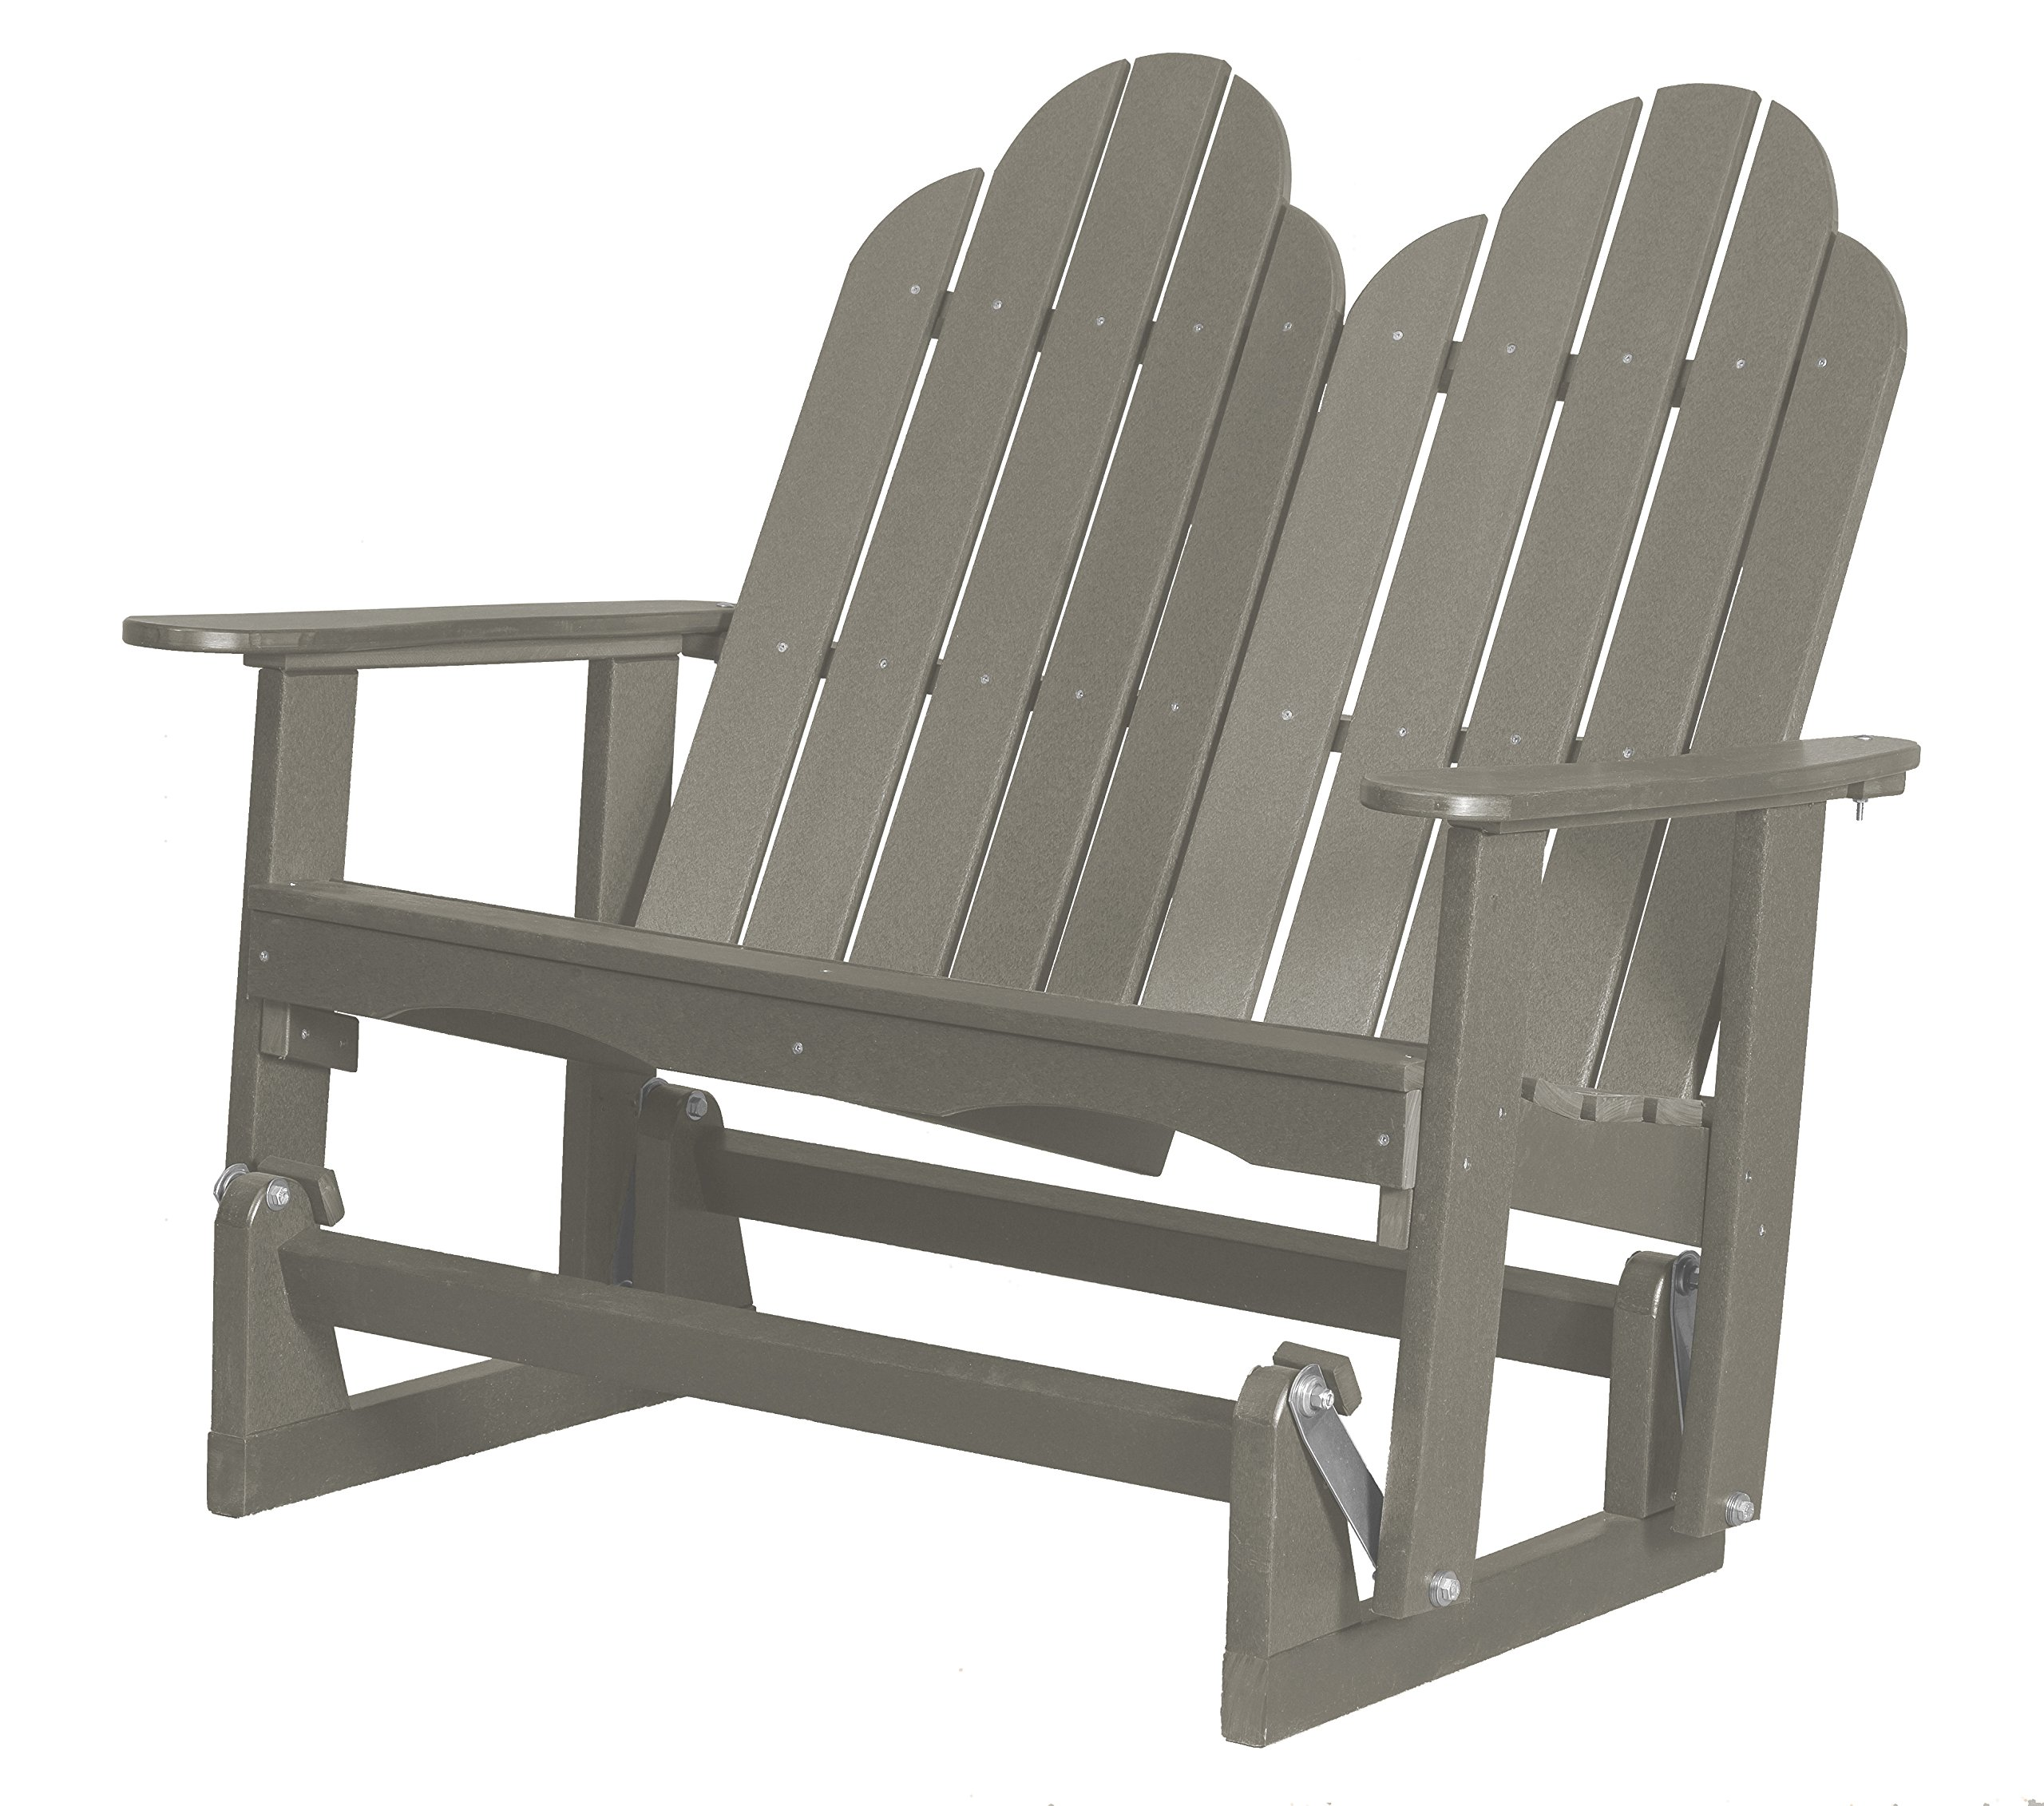 Little Cottage Company Lcc-208 Classic Adirondack Glider, Light Gray by Little Cottage Company